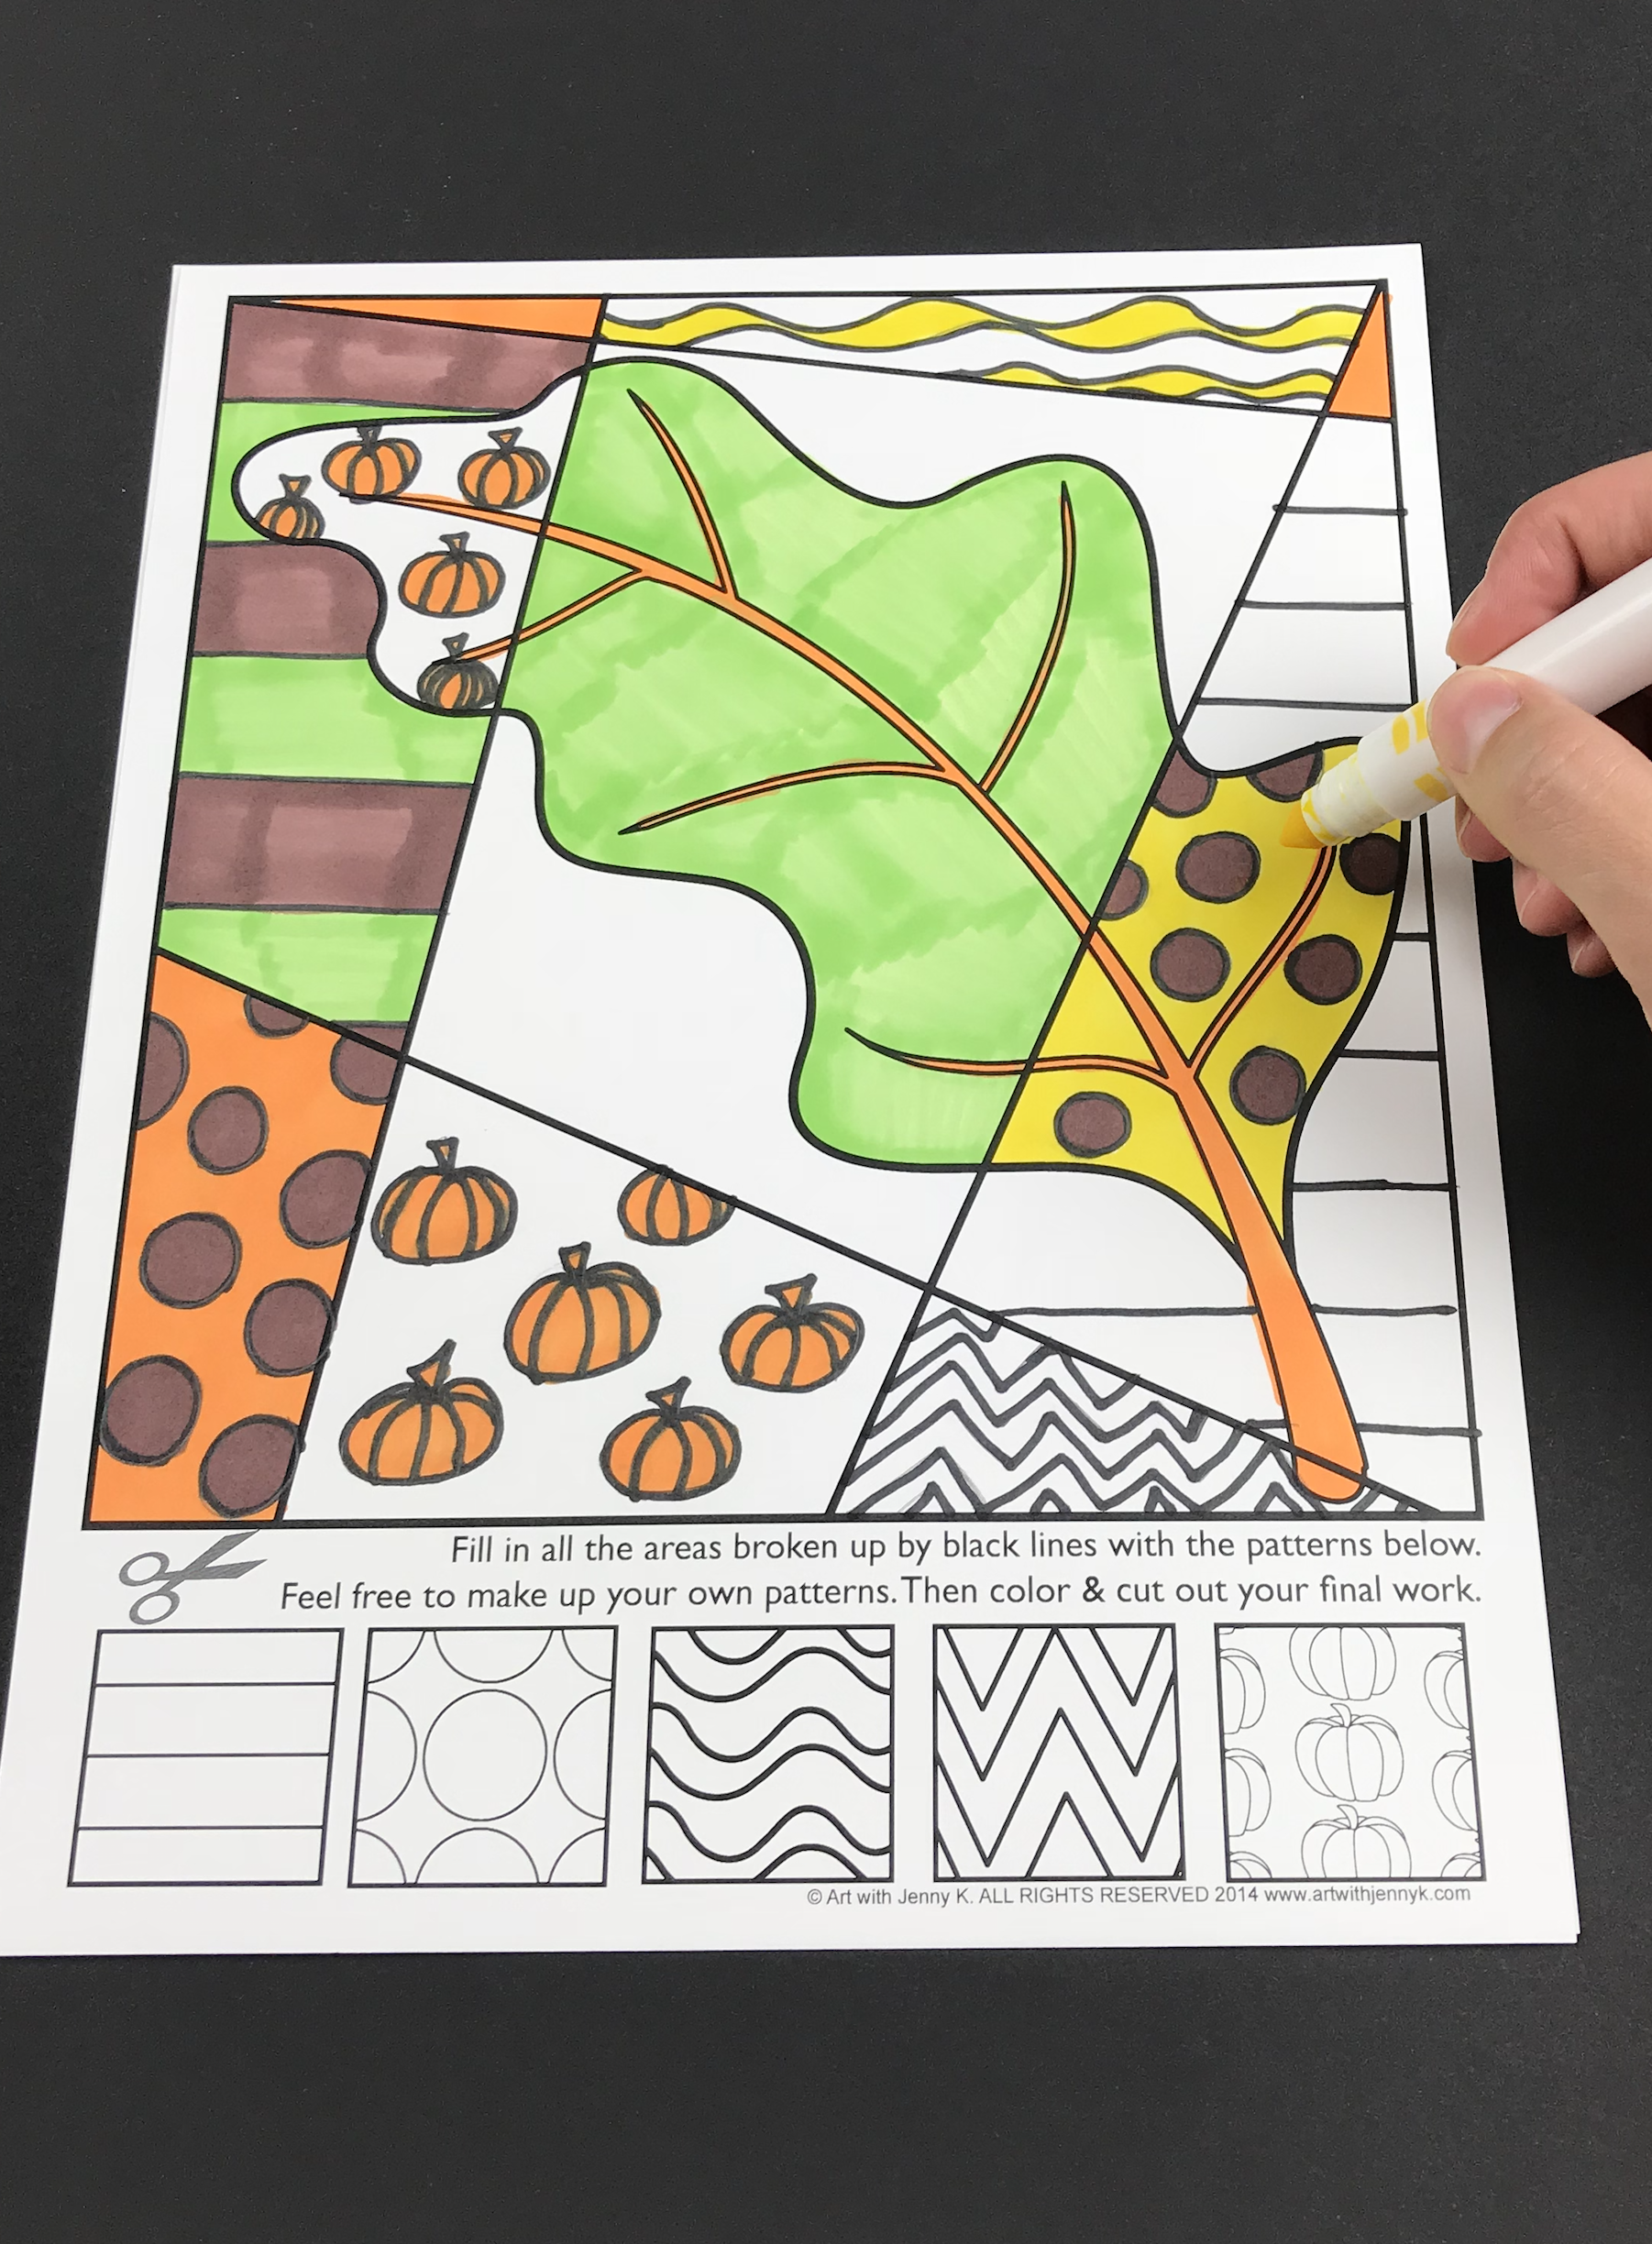 Fall Interactive Coloring Pages For Students And Teachers Art Lessons For Kids Art Projects Kids Art Projects